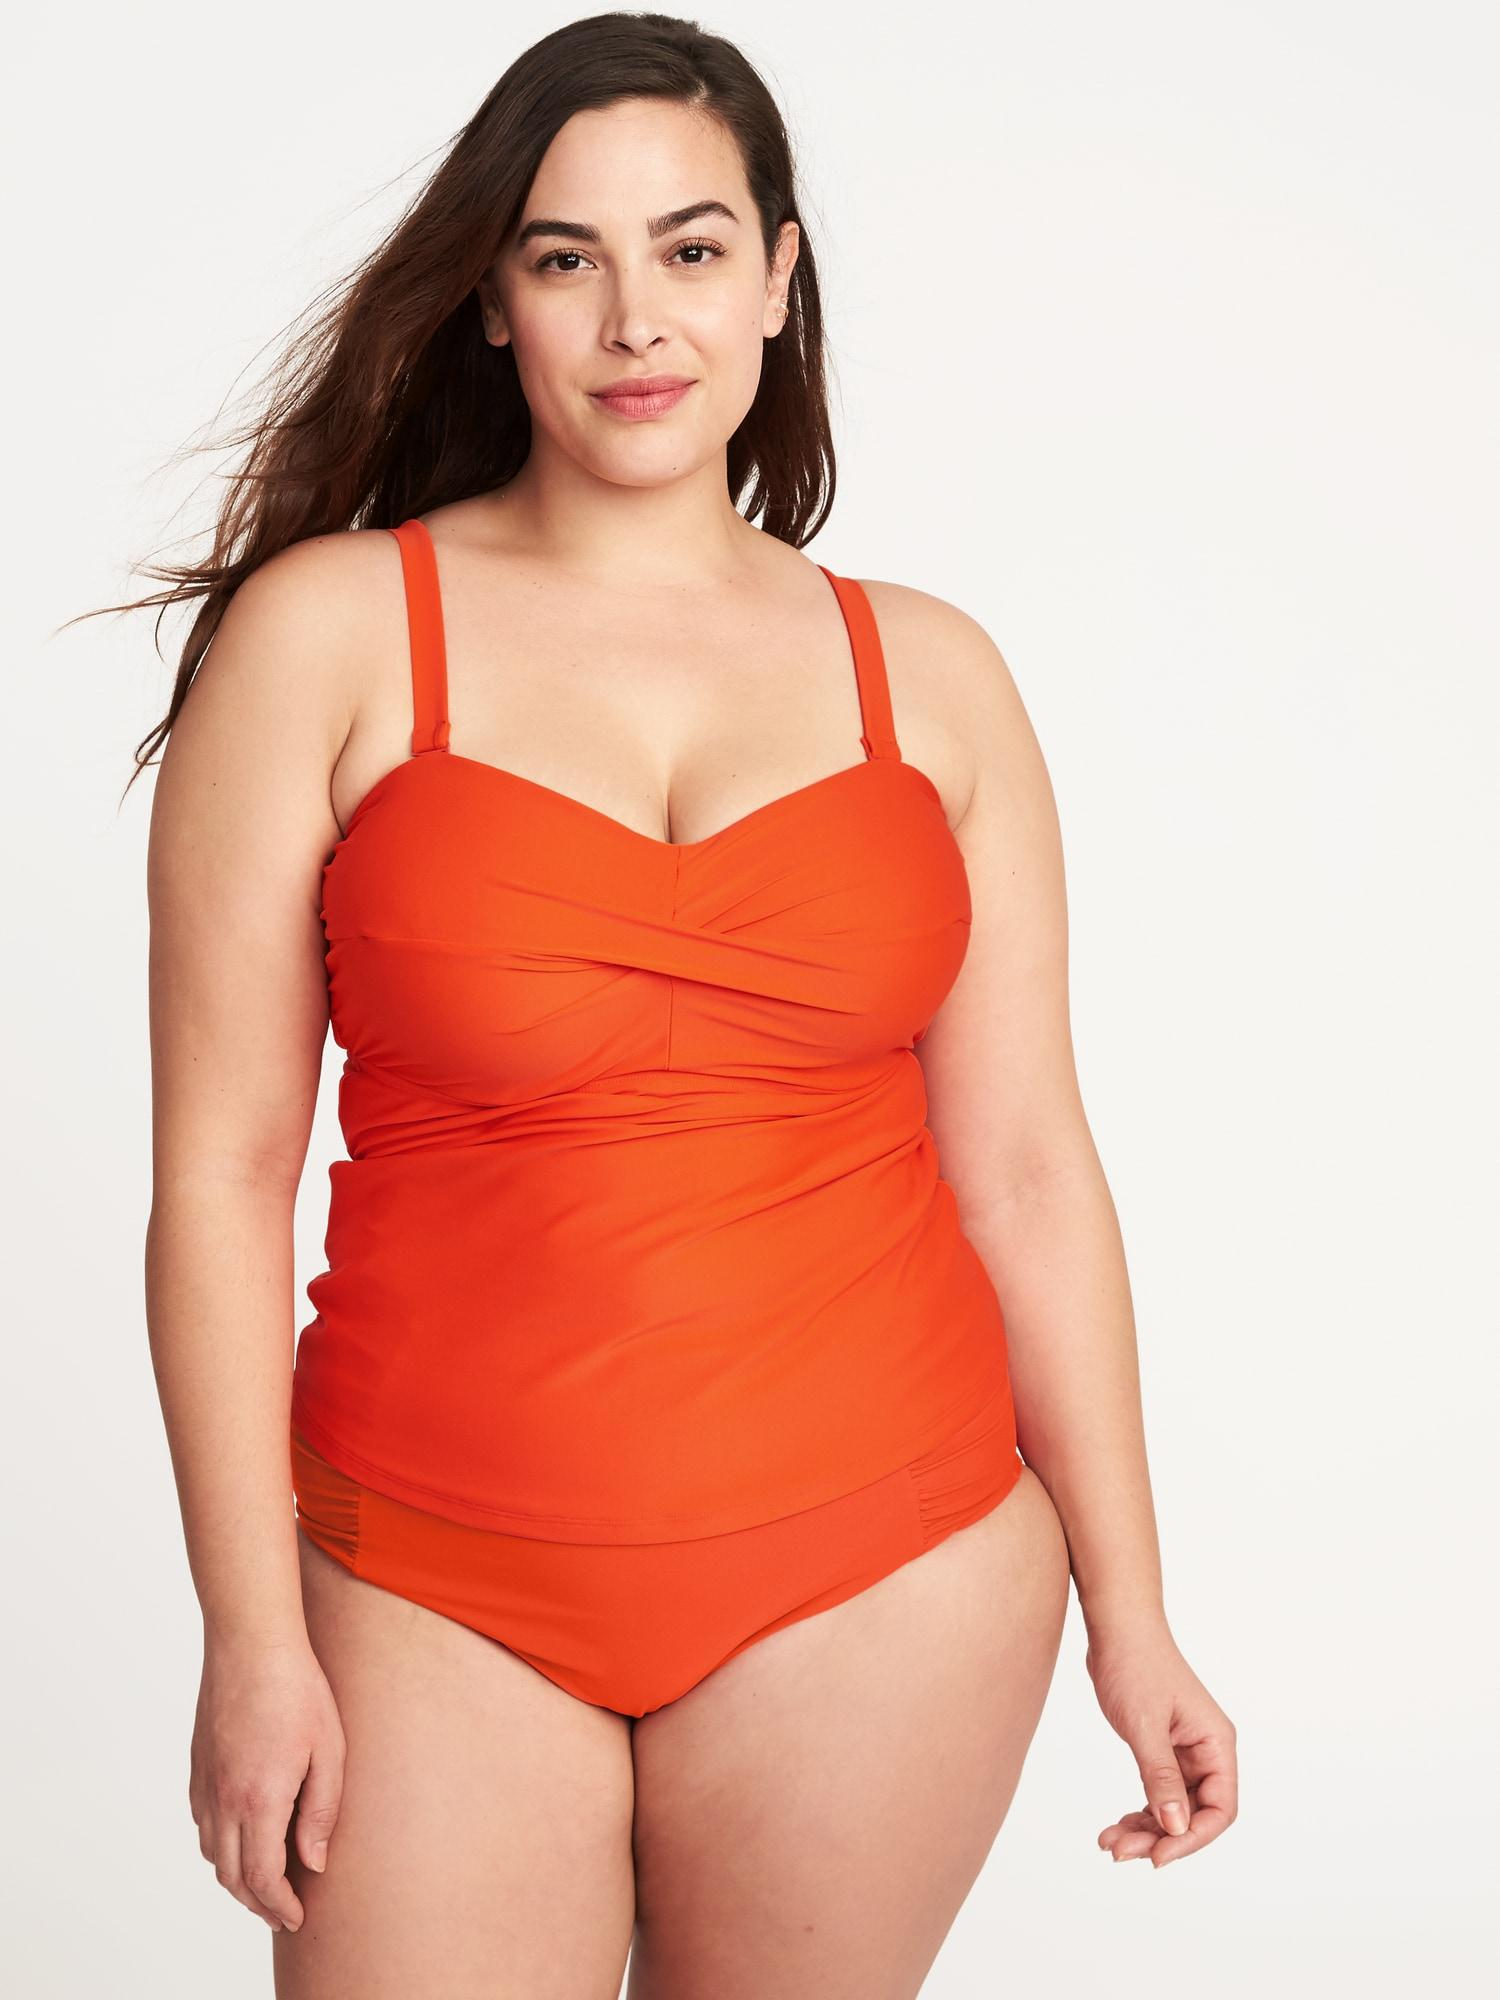 2d3bb95296 Old Navy Underwire Plus-size Tankini Top in Orange - Lyst